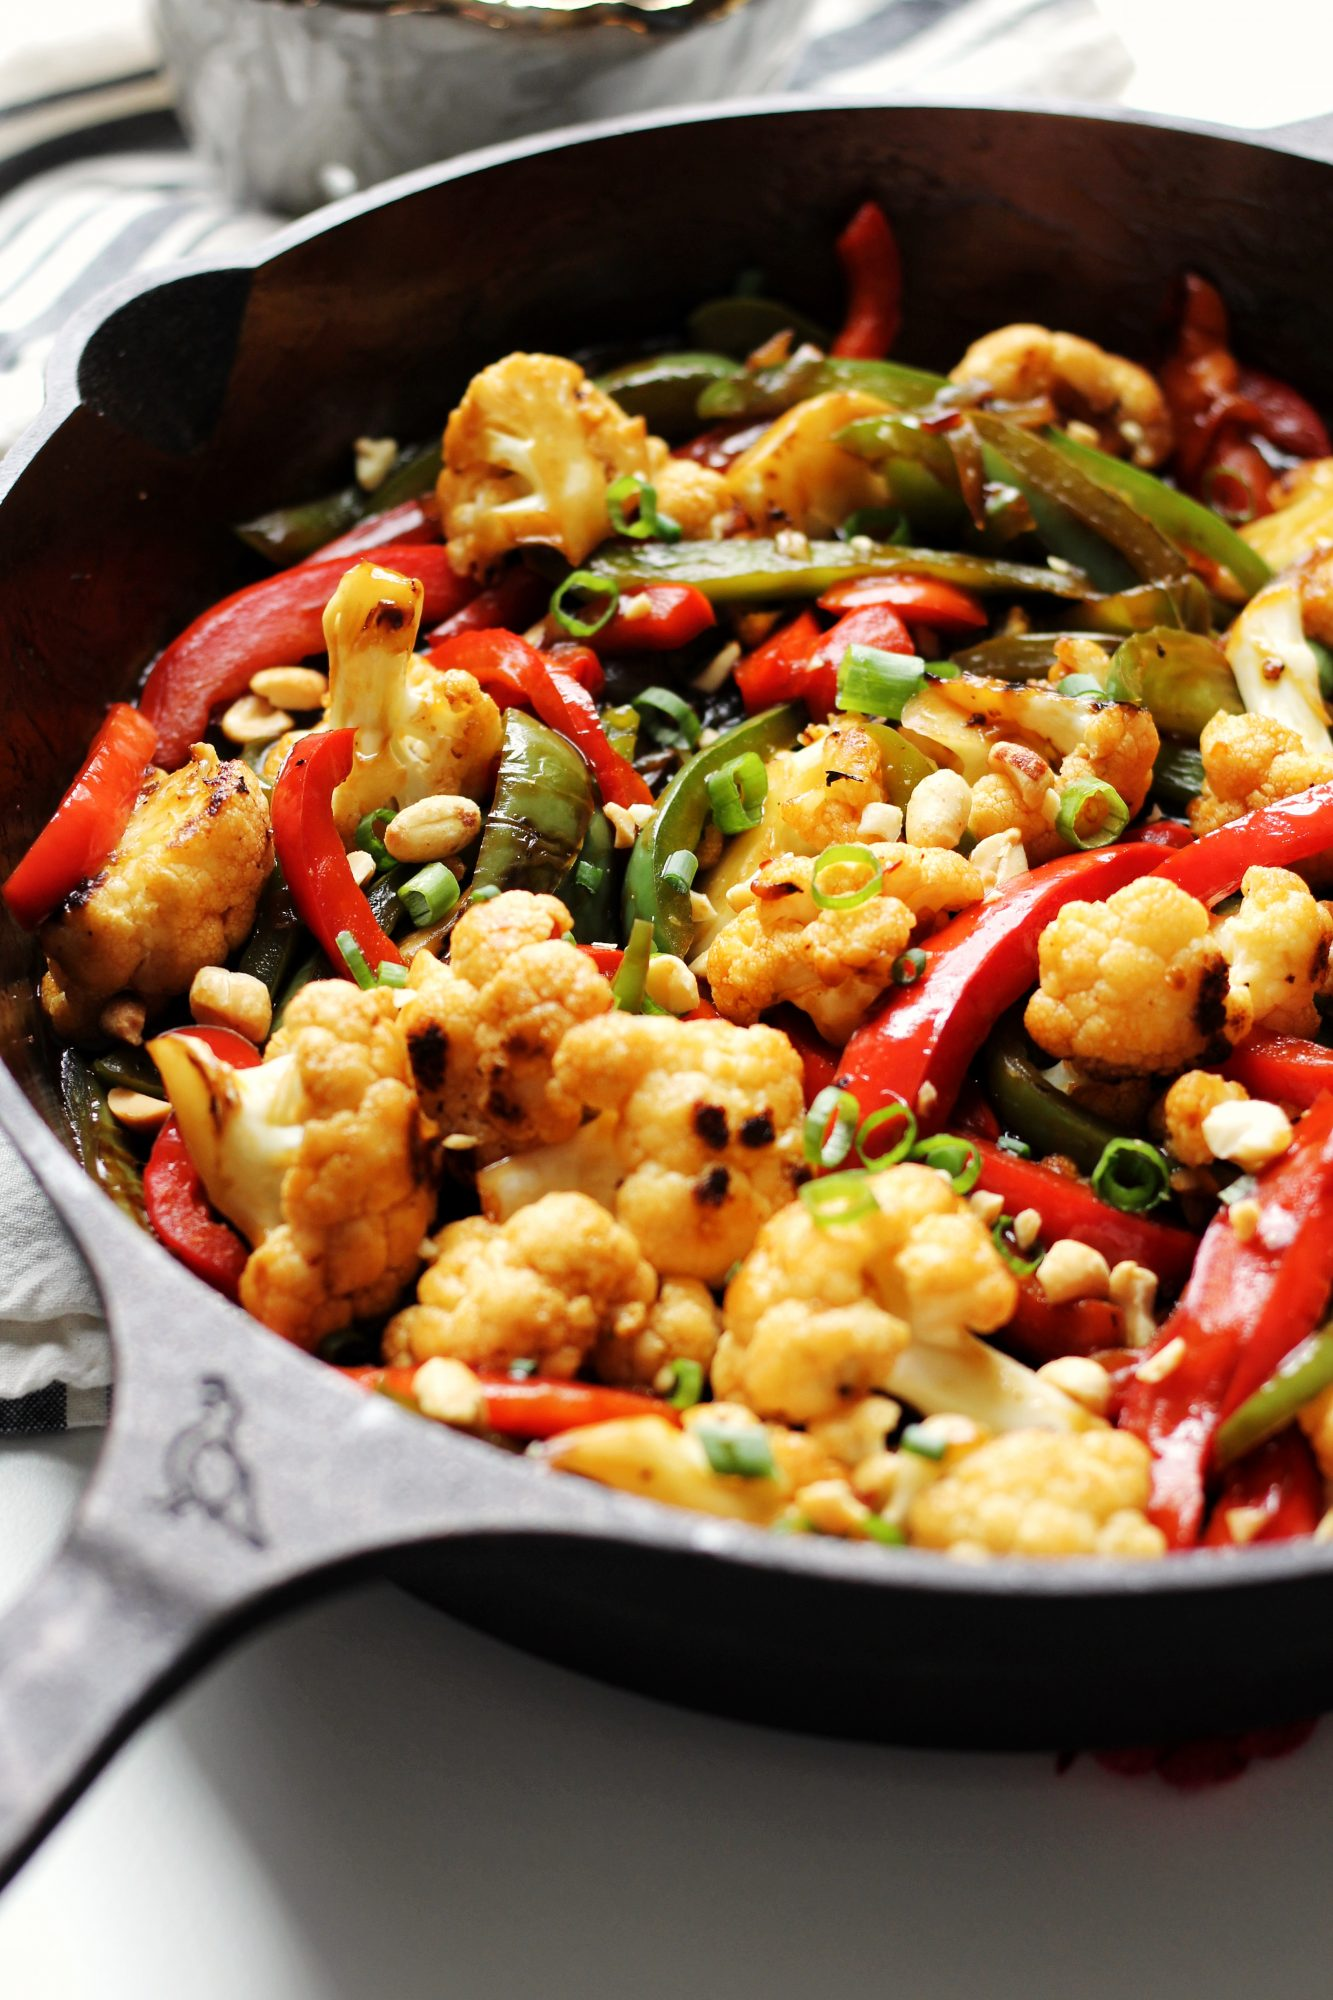 Kung Pao Cauliflower is vegan, gluten-free, and an easy weeknight meal